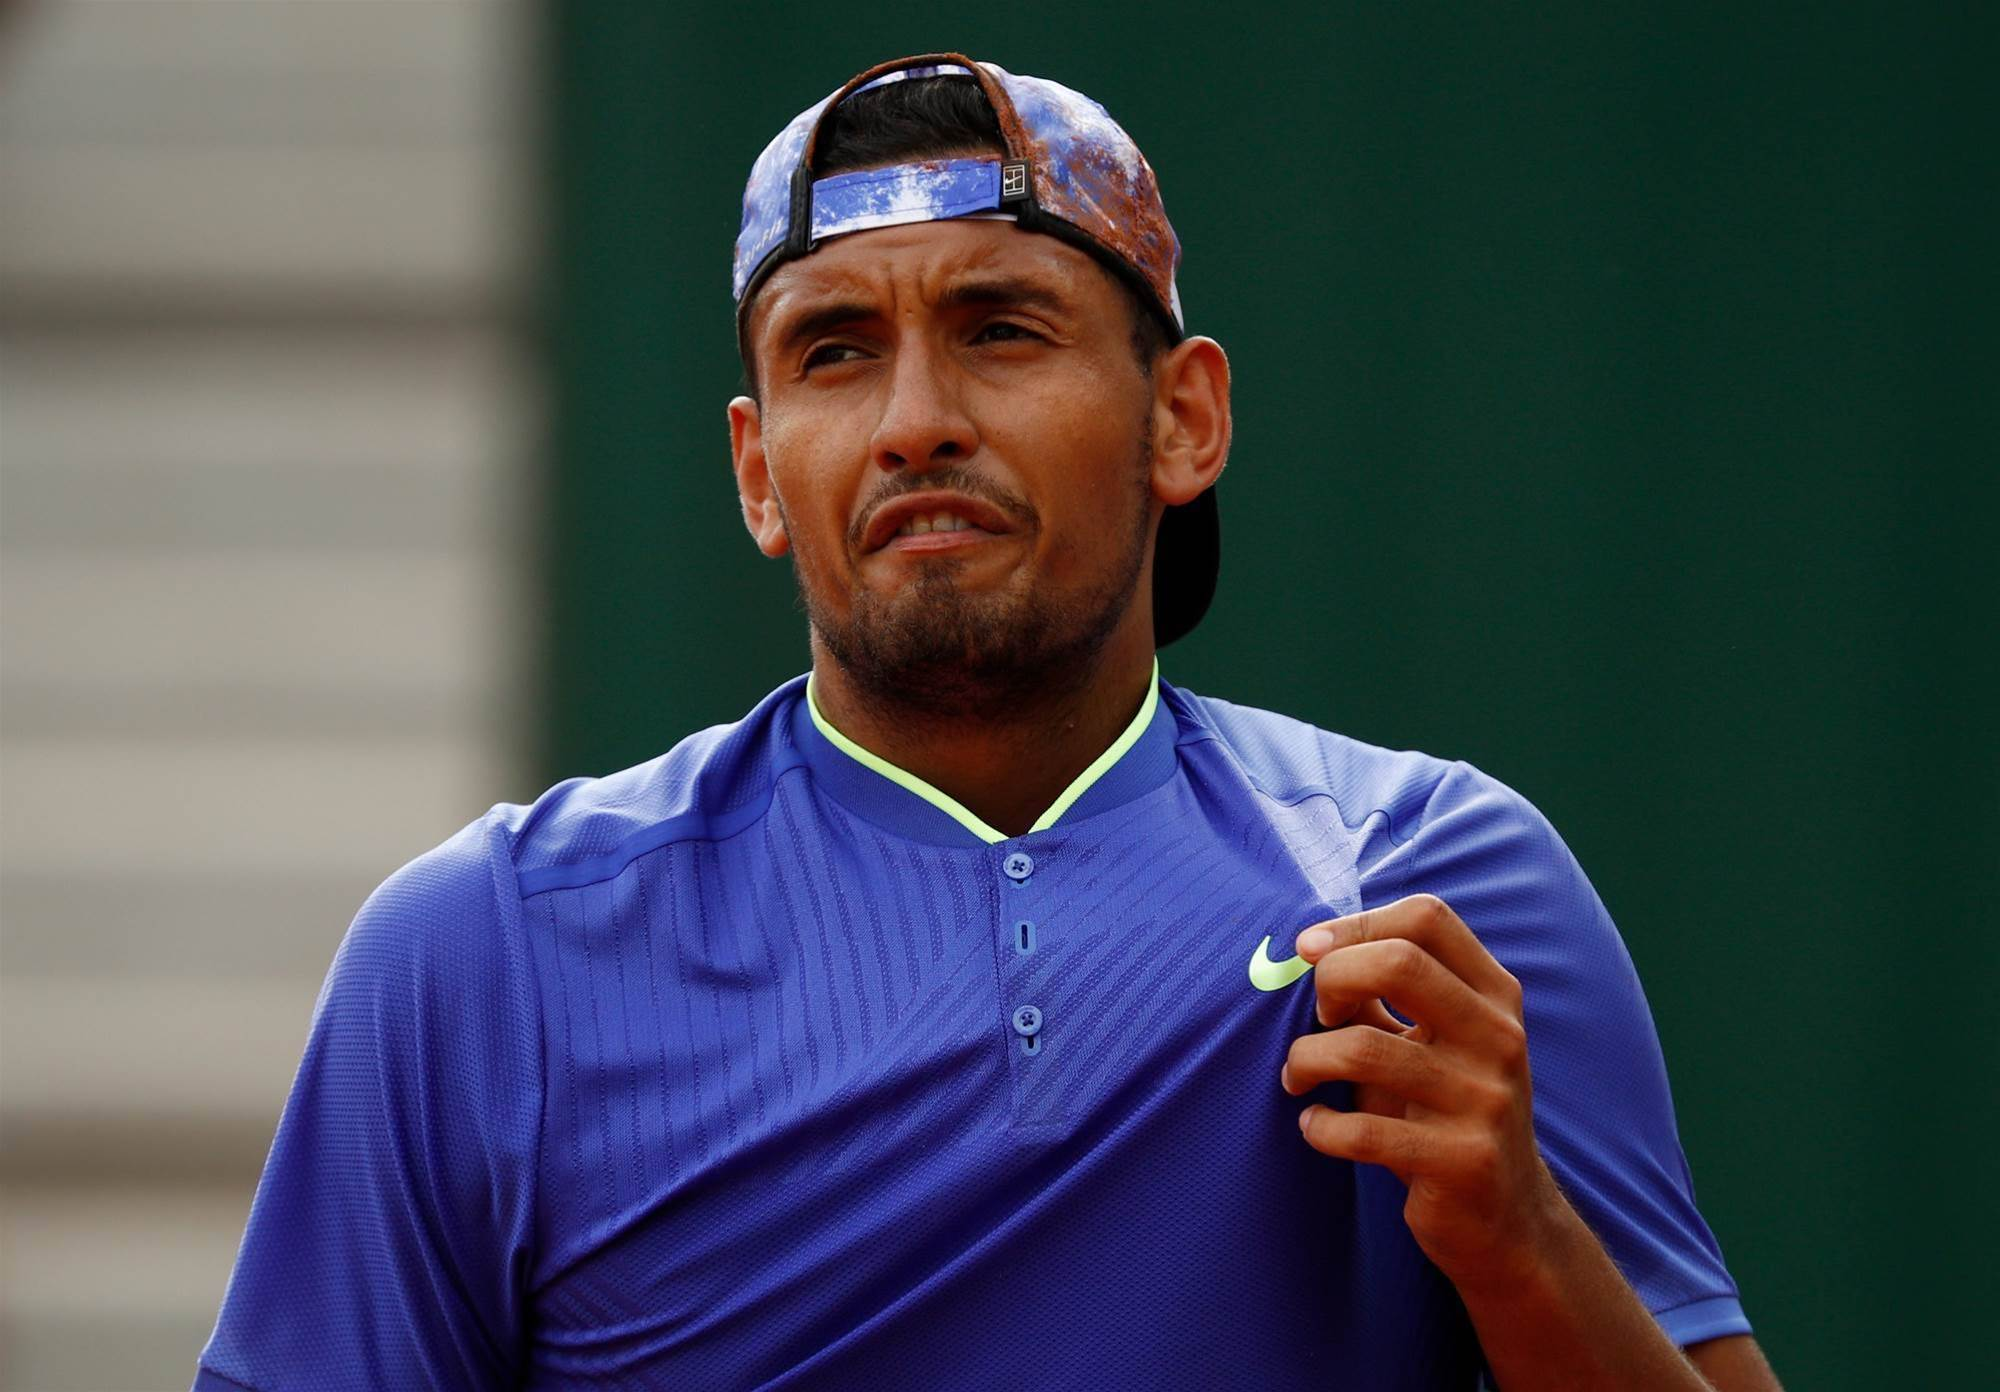 Kyrgios smashes racket in French Open defeat